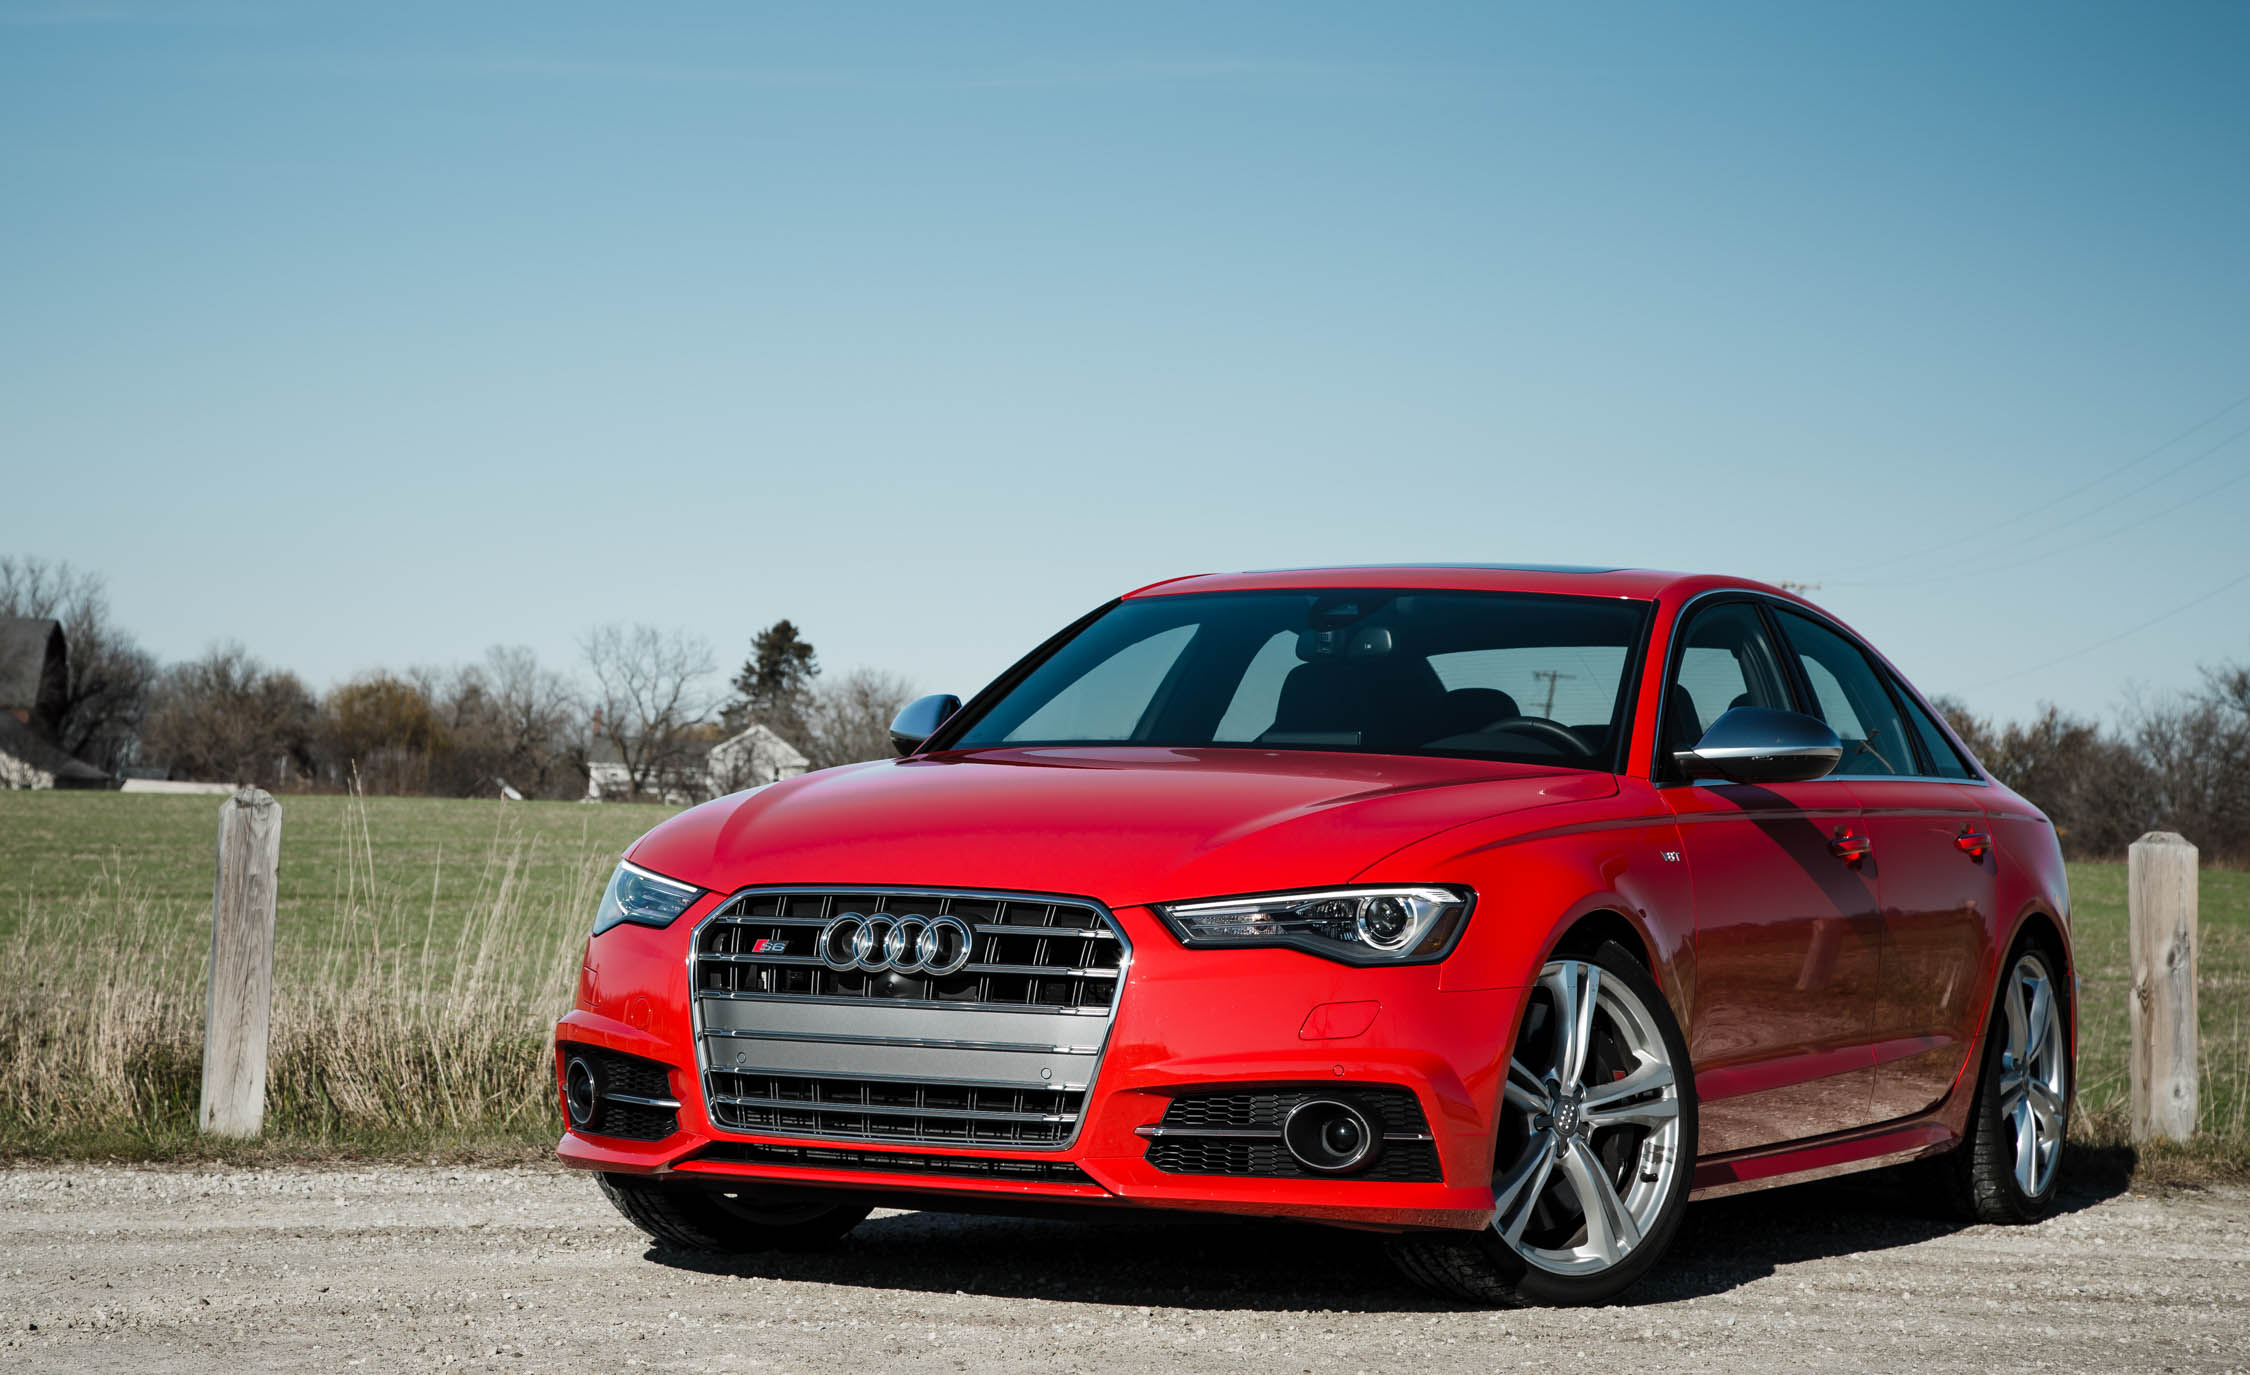 2016 Audi S6 Exterior Full Front and Side